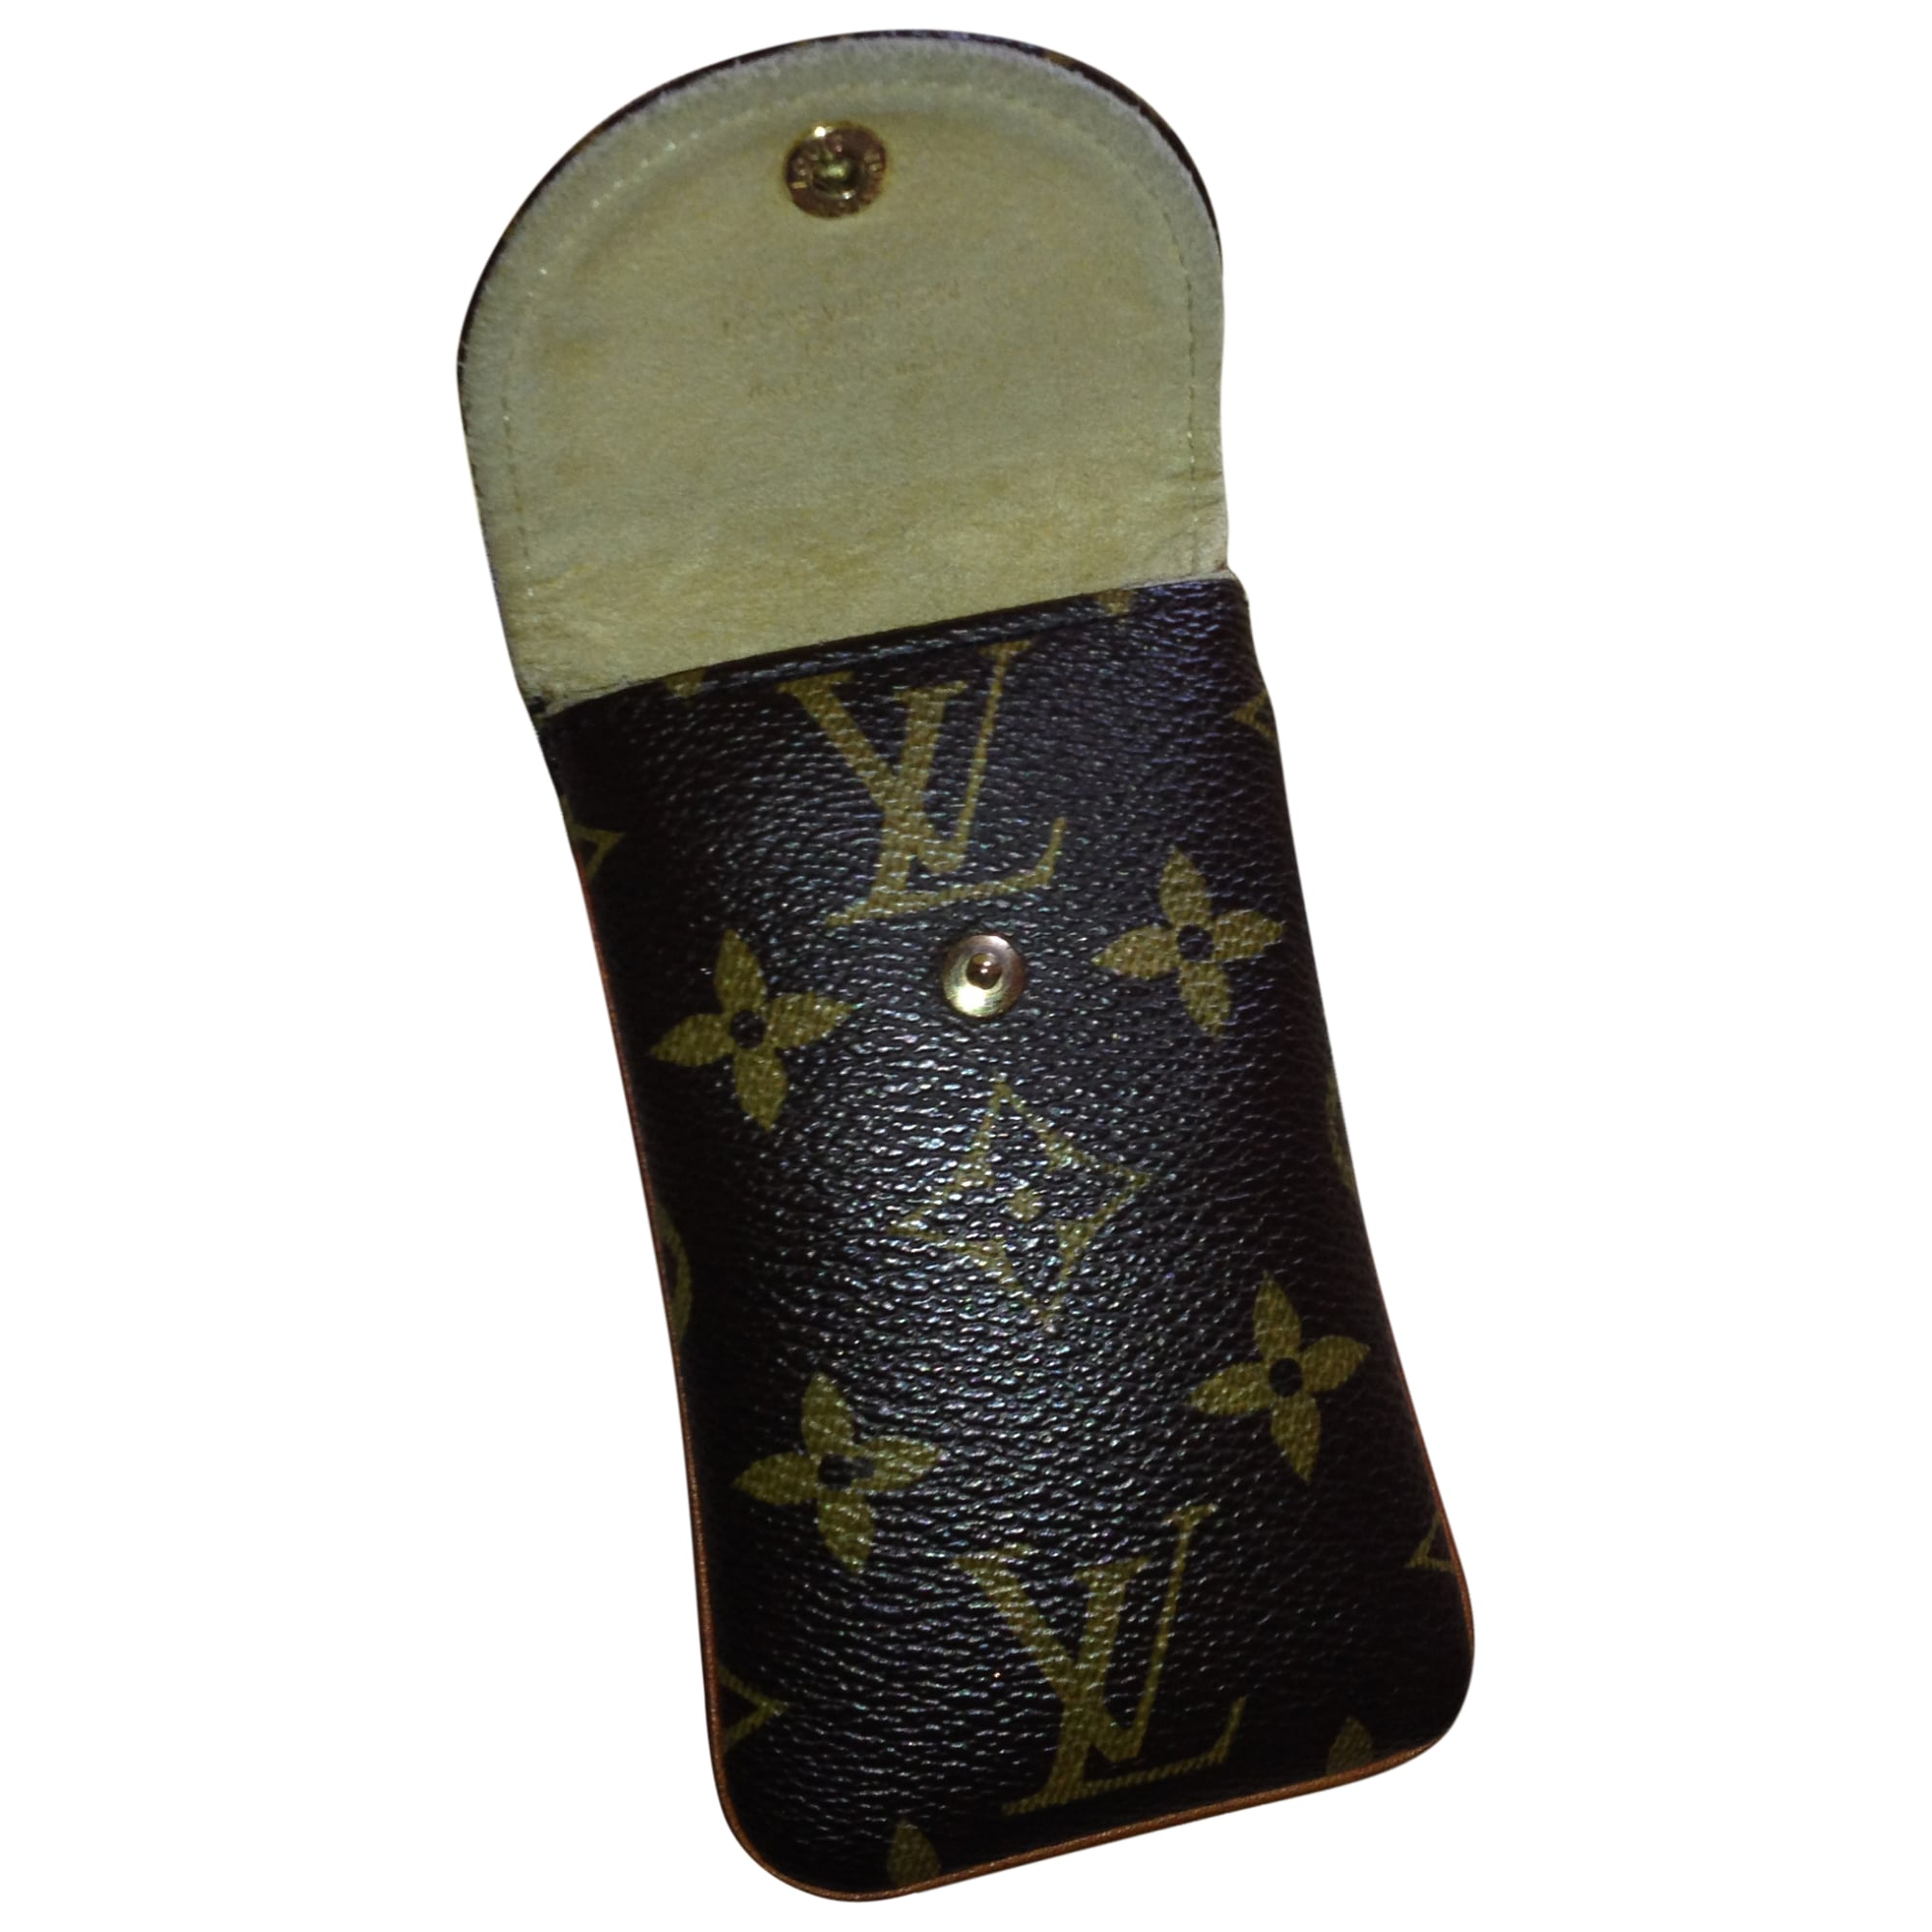 etui louis vuitton monogram 4000988. Black Bedroom Furniture Sets. Home Design Ideas